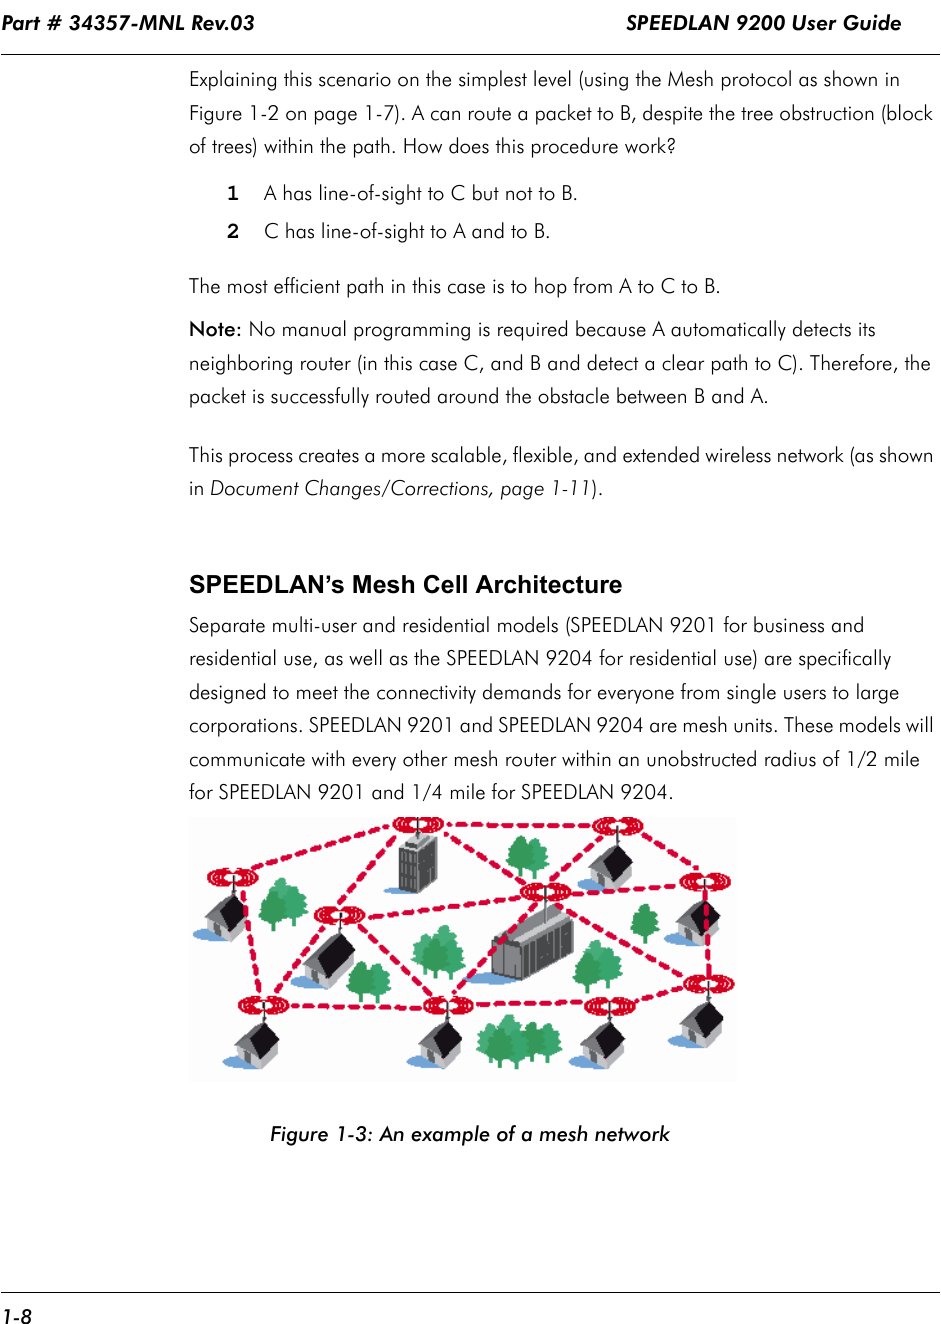 Part # 34357-MNL Rev.03                                                            SPEEDLAN 9200 User Guide 1-8Explaining this scenario on the simplest level (using the Mesh protocol as shown in Figure 1-2 on page 1-7). A can route a packet to B, despite the tree obstruction (block of trees) within the path. How does this procedure work? 1A has line-of-sight to C but not to B.2C has line-of-sight to A and to B.The most efficient path in this case is to hop from A to C to B. Note: No manual programming is required because A automatically detects its neighboring router (in this case C, and B and detect a clear path to C). Therefore, the packet is successfully routed around the obstacle between B and A. This process creates a more scalable, flexible, and extended wireless network (as shown in Document Changes/Corrections, page 1-11). SPEEDLAN's Mesh Cell ArchitectureSeparate multi-user and residential models (SPEEDLAN 9201 for business and residential use, as well as the SPEEDLAN 9204 for residential use) are specifically designed to meet the connectivity demands for everyone from single users to large corporations. SPEEDLAN 9201 and SPEEDLAN 9204 are mesh units. These models will communicate with every other mesh router within an unobstructed radius of 1/2 mile for SPEEDLAN 9201 and 1/4 mile for SPEEDLAN 9204.     Figure 1-3: An example of a mesh network